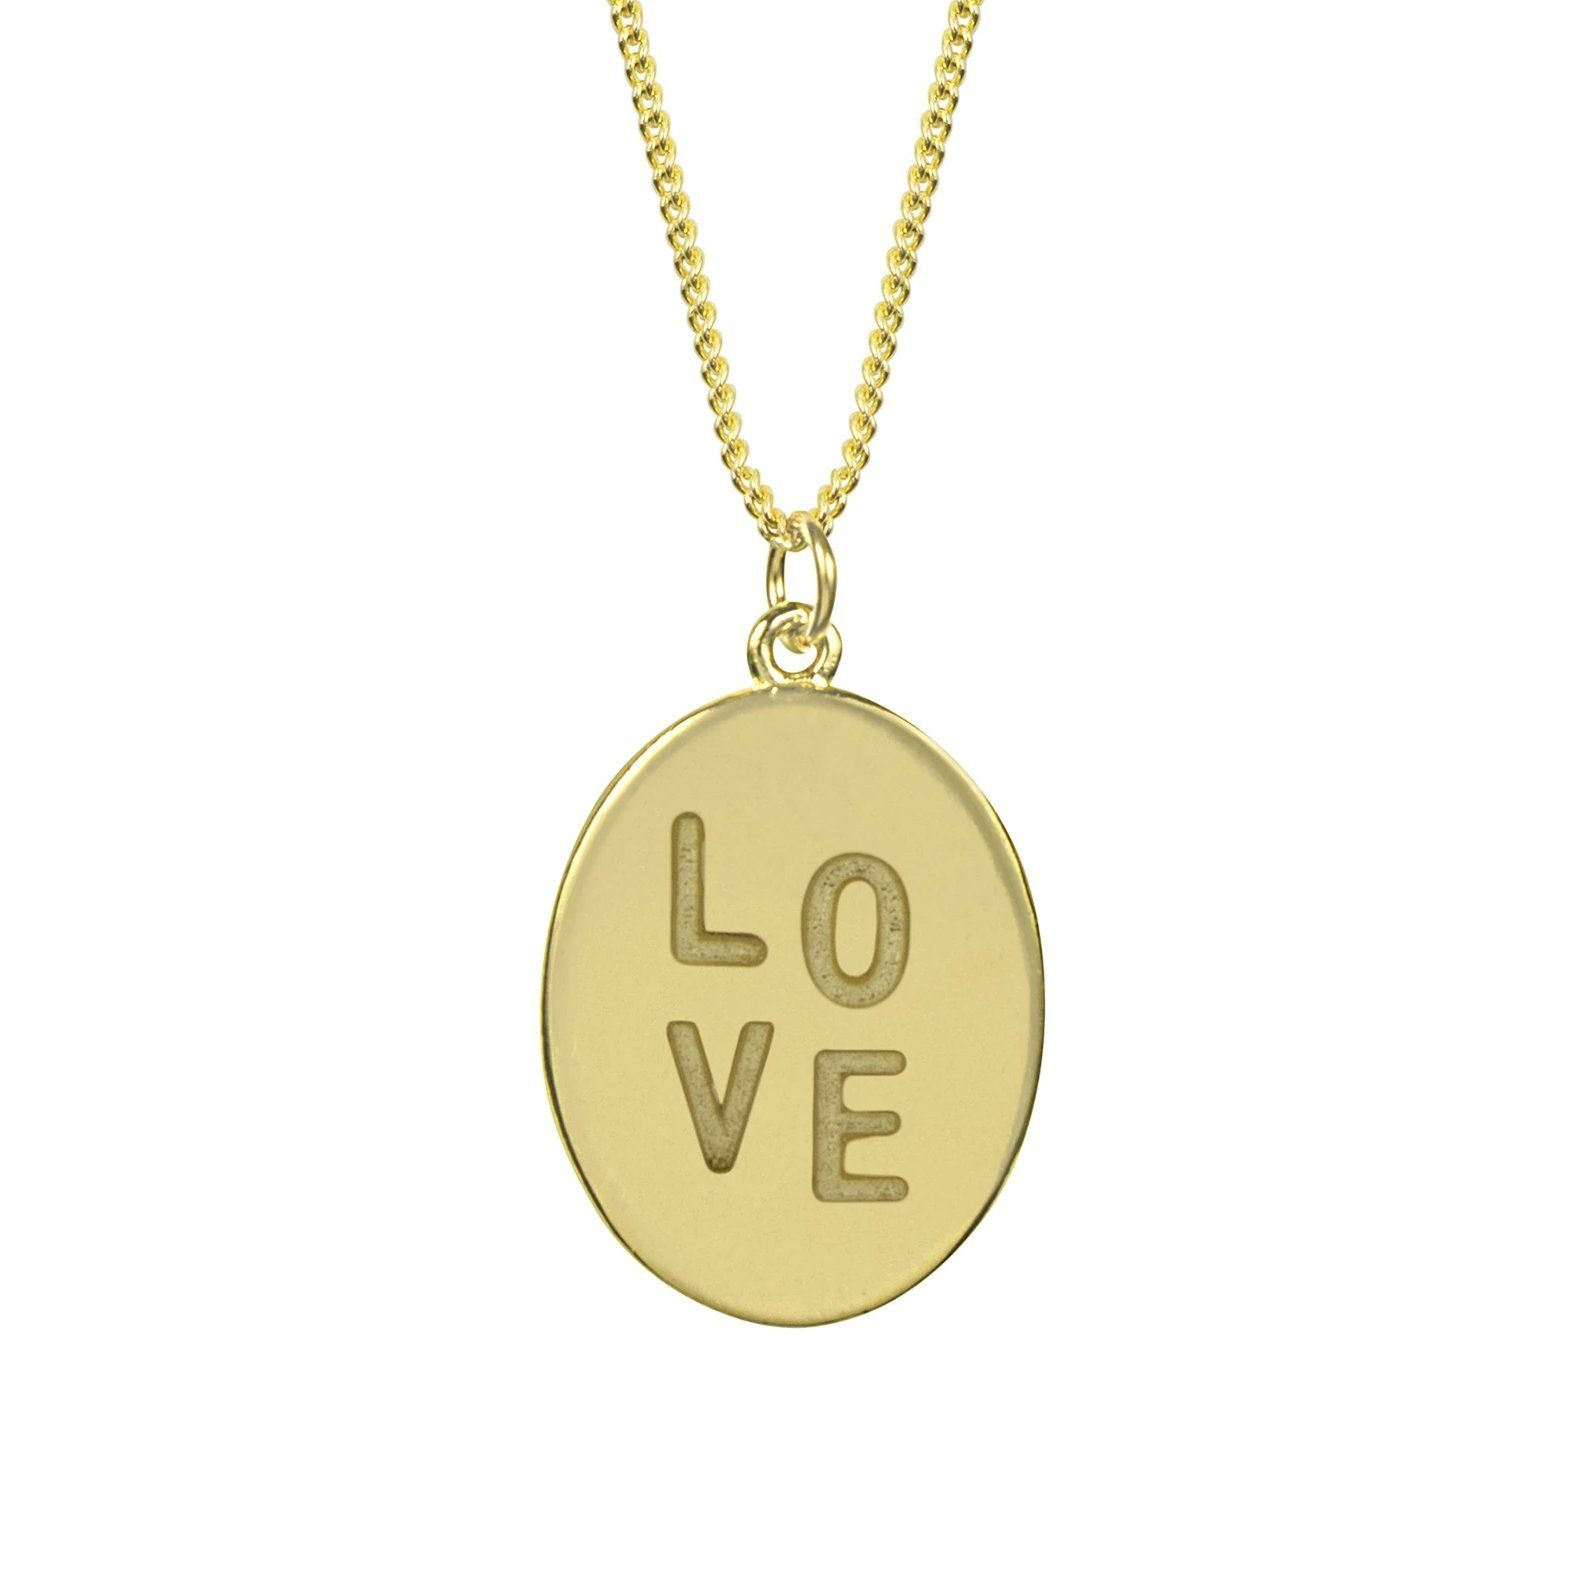 Up close image of the gold Love Charm Necklace with writing.